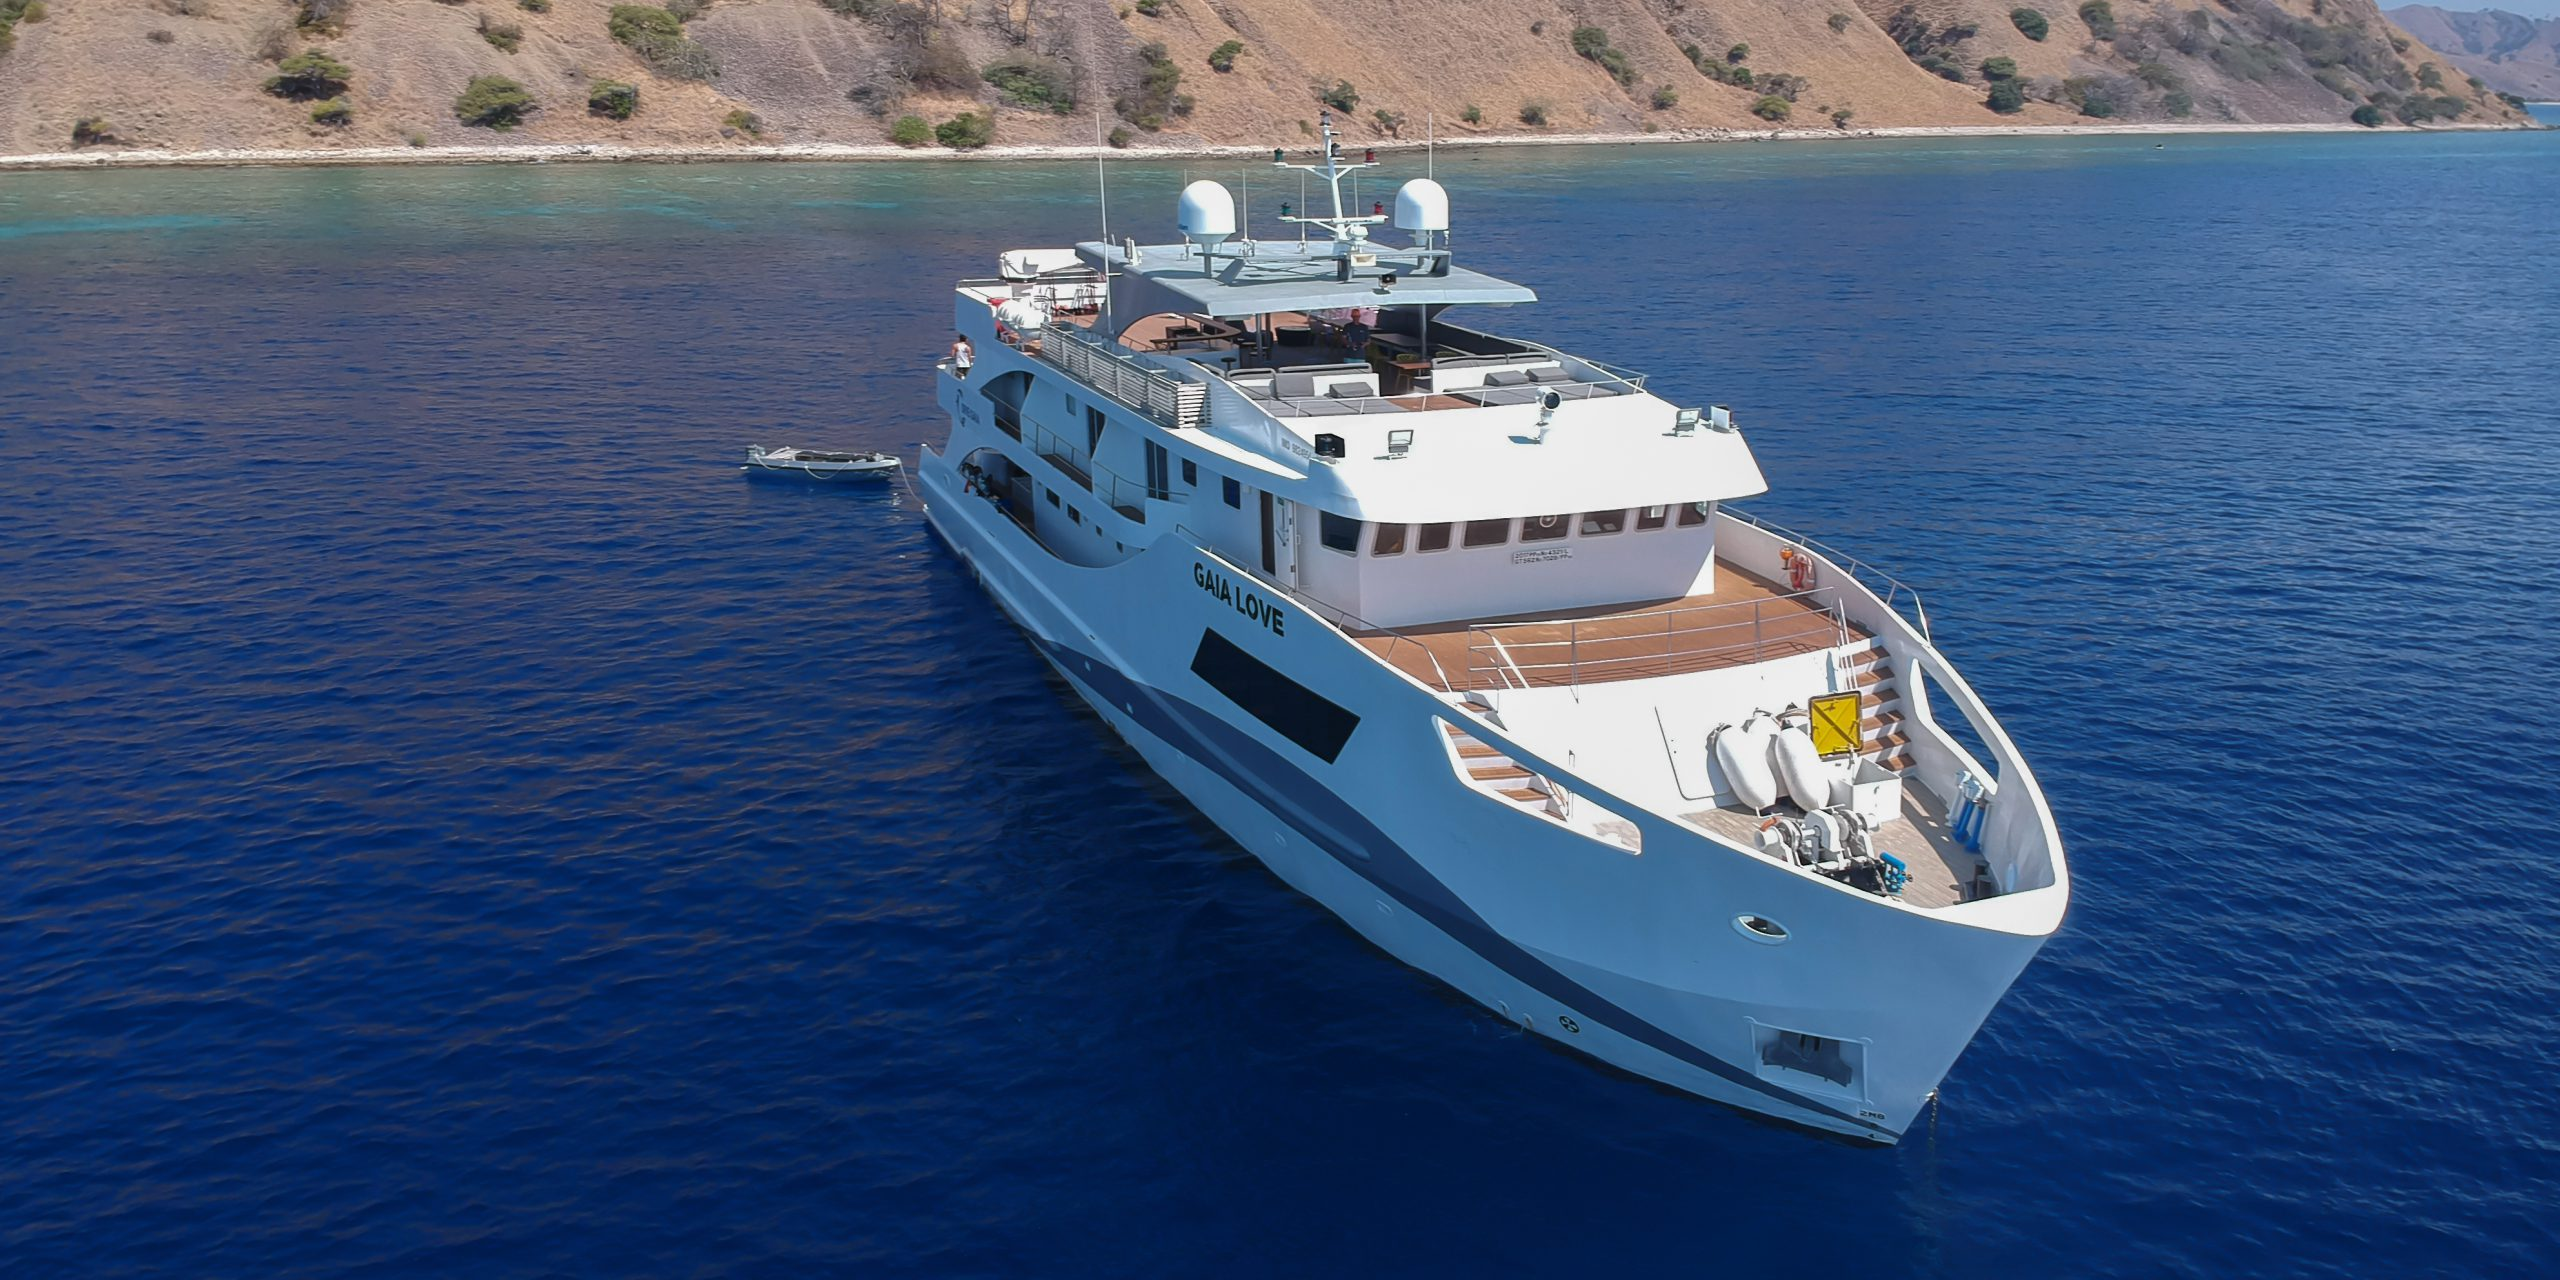 Dive Gaia - Gaia Love- Luxury Liveaboard